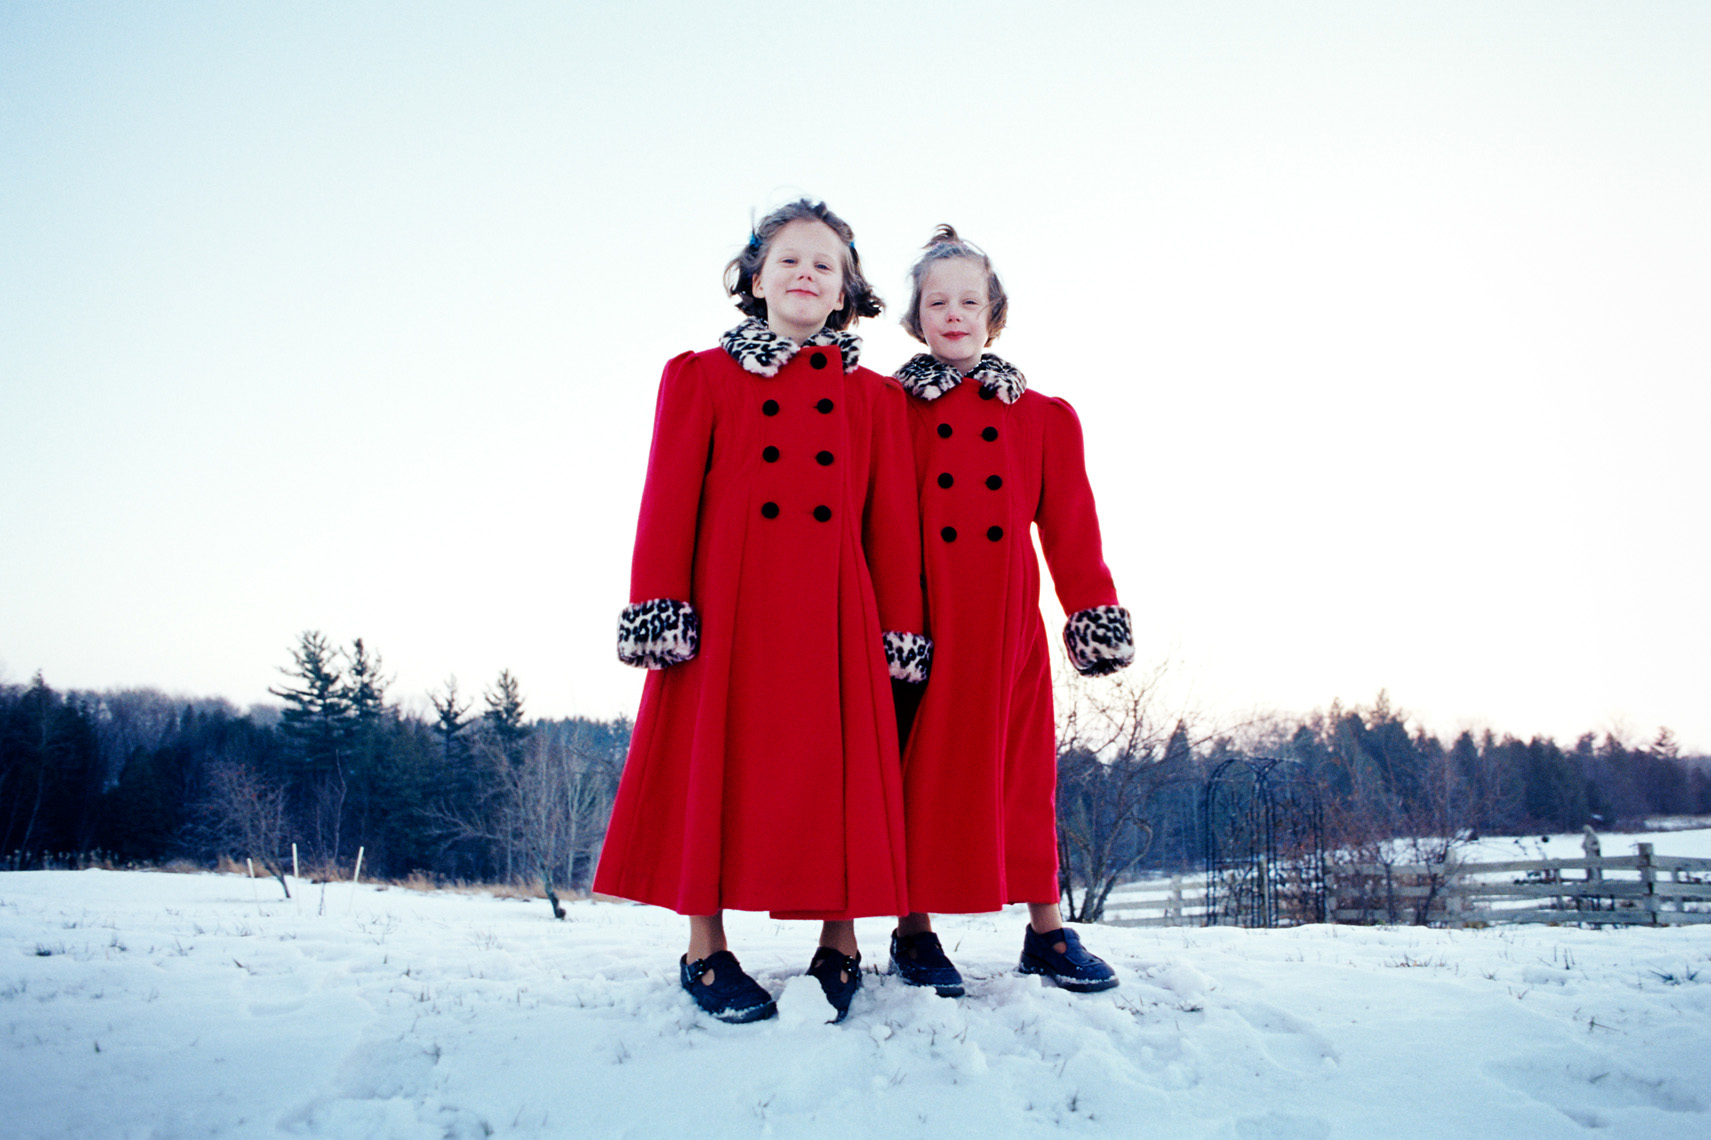 Young twin girls in snow with matching red coats portrait